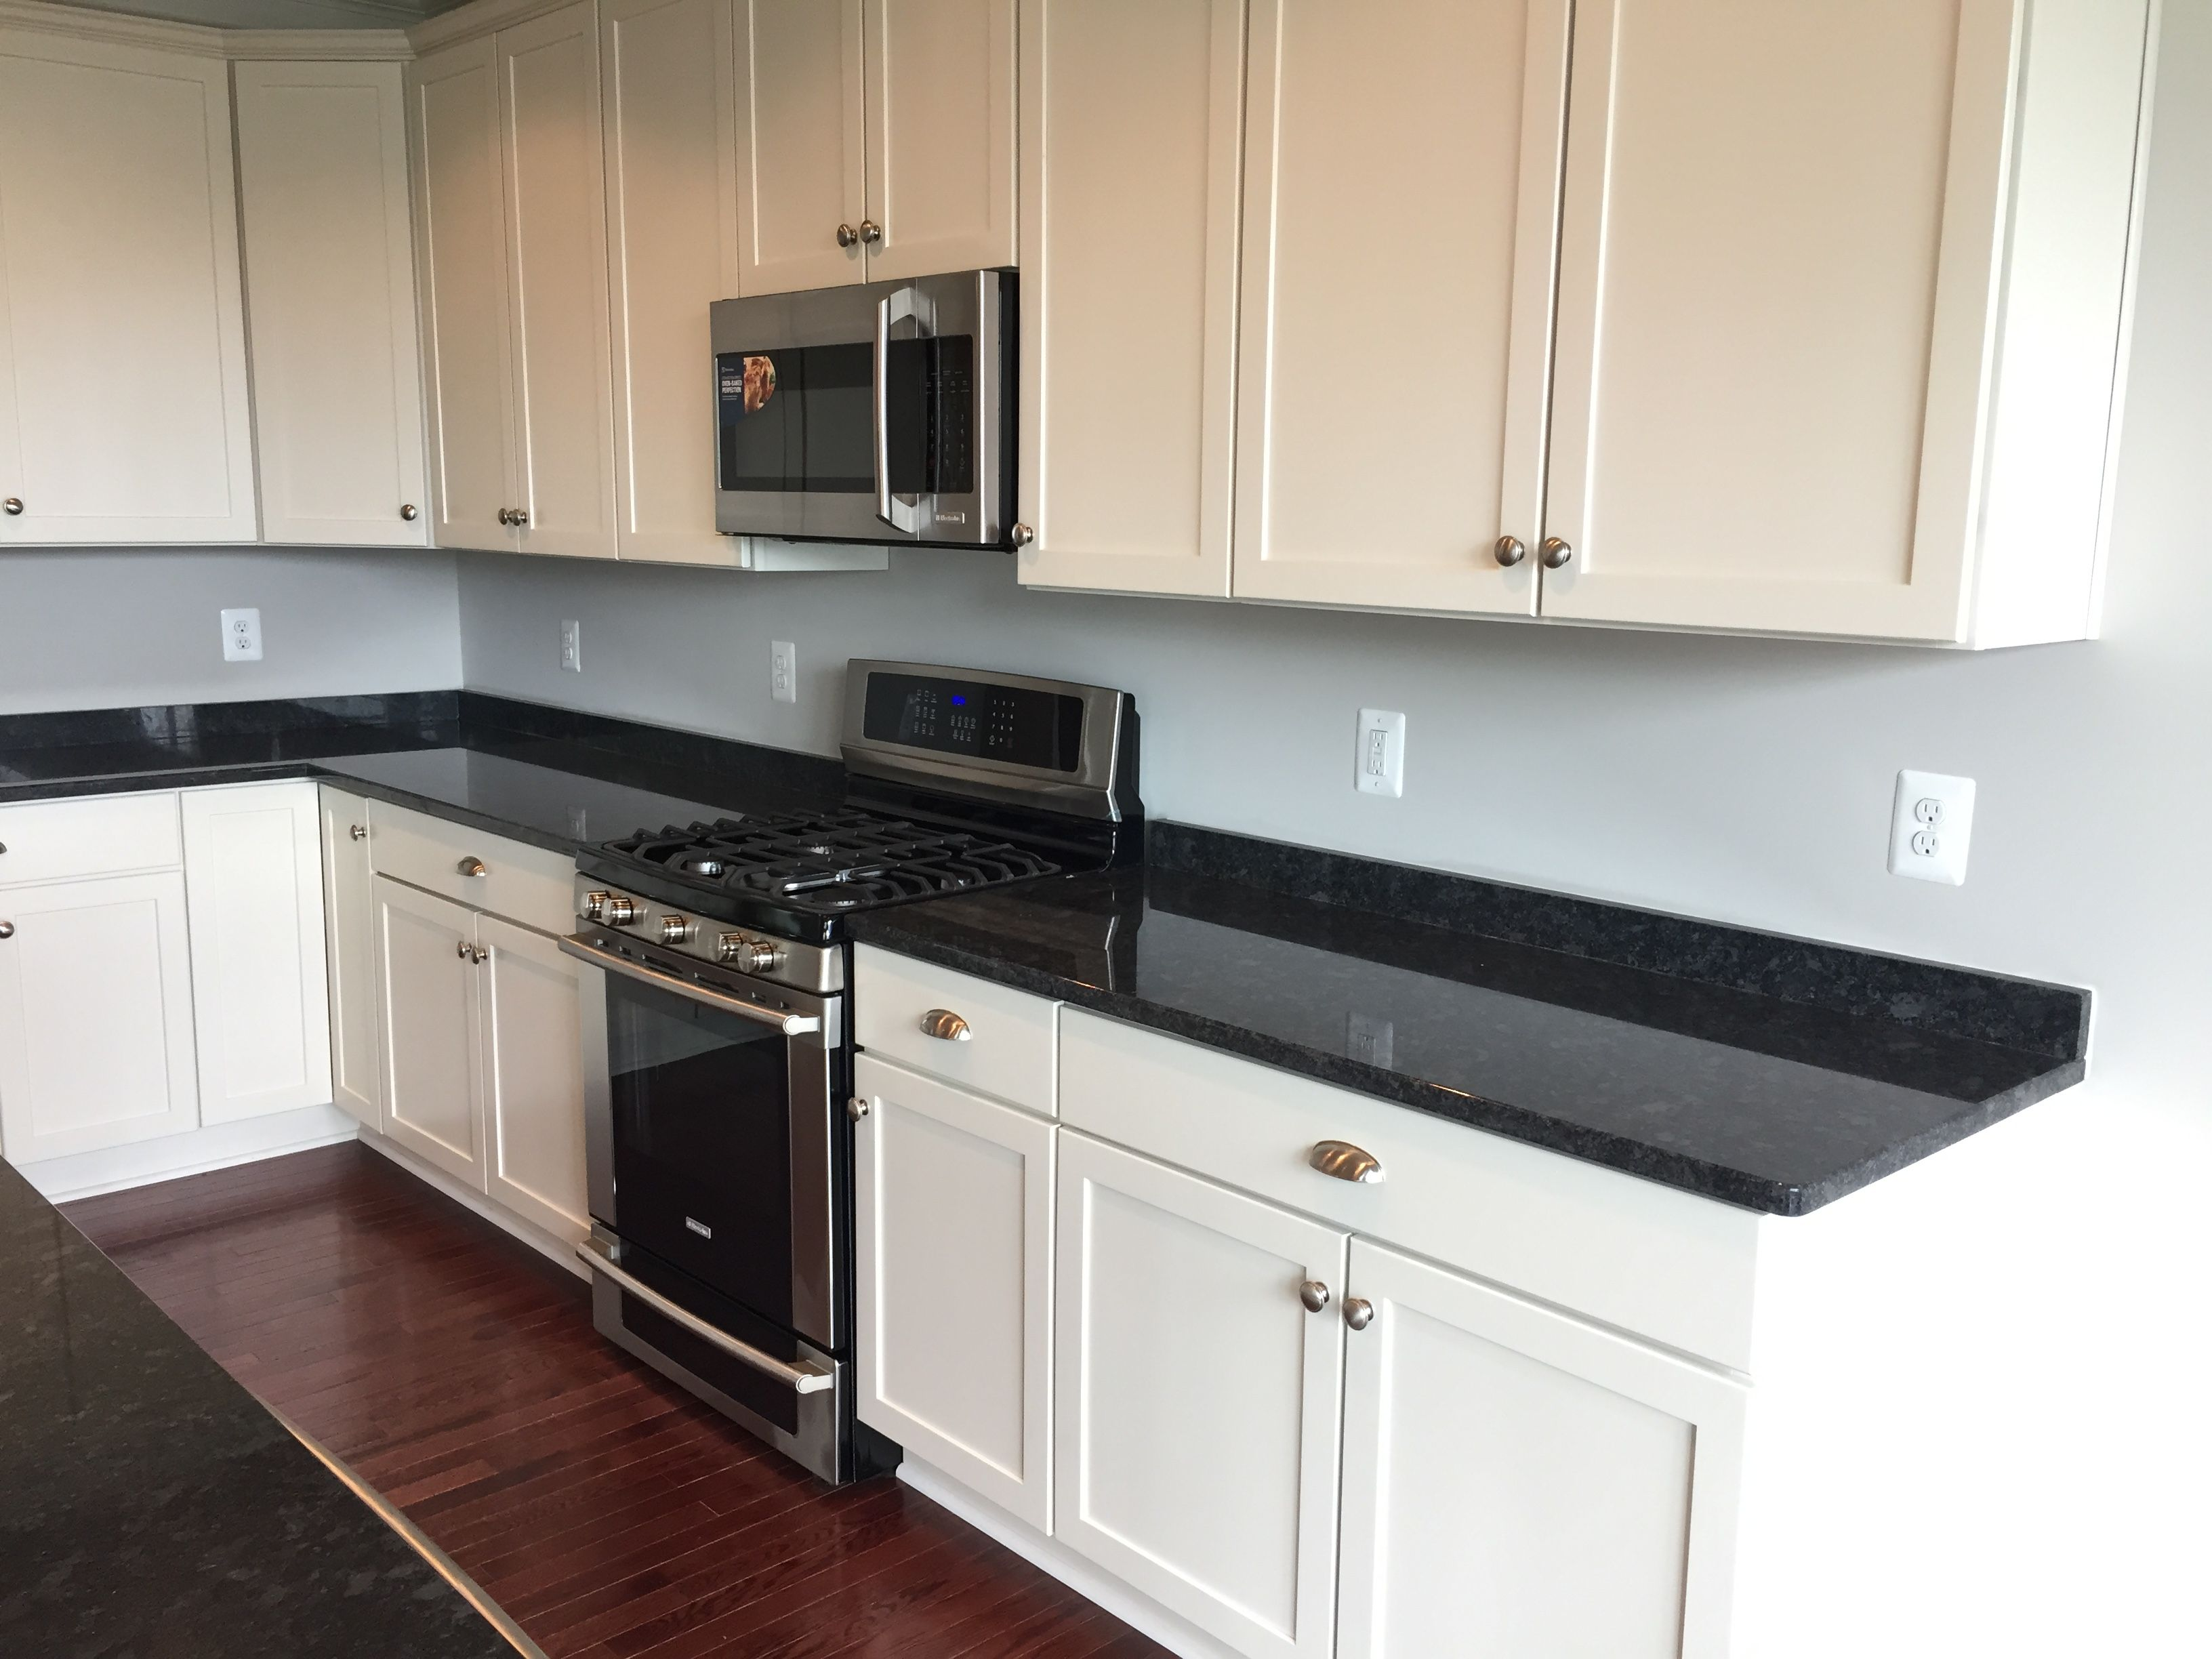 Our Builder Uses Merillat Cabinets The Classic Collection We Selected The Portrait Style Maple Cabinets House Design Kitchen Home Kitchens Kitchen Remodel